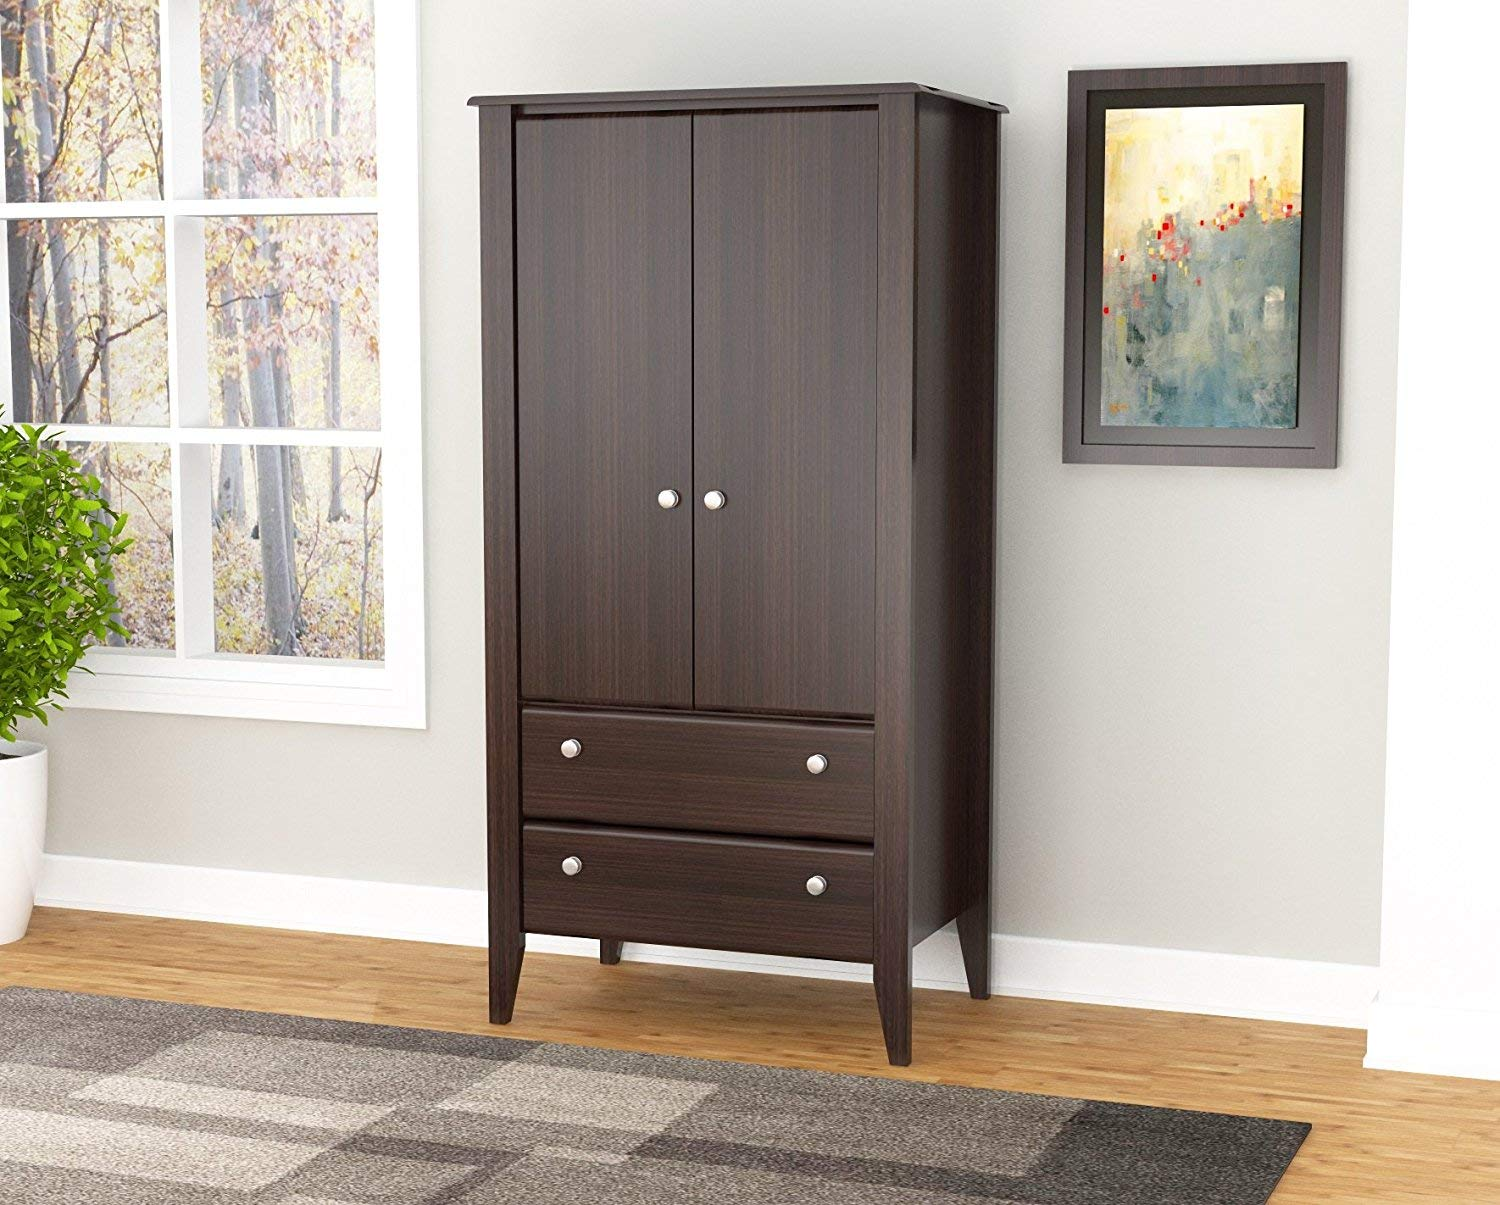 Inval AM-17723 Espresso Wengue Wood Two Door and Drawer Armoire by Inval